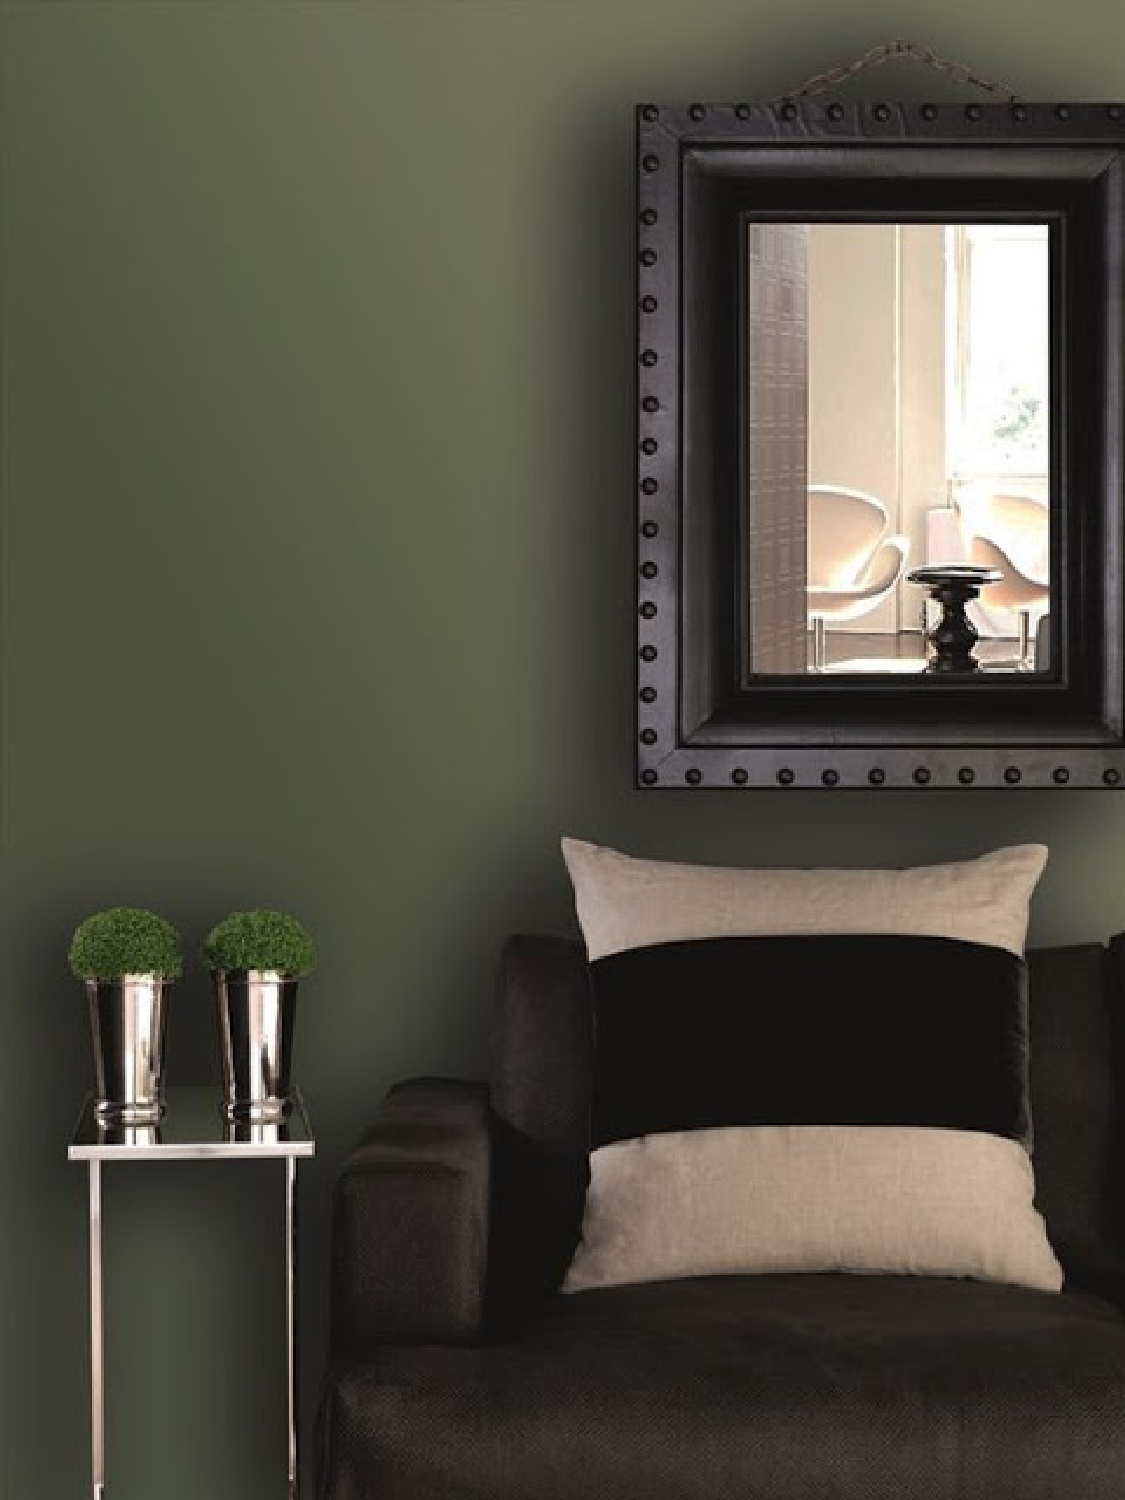 Deep green walls and black in a moody living room. Come explore Dark Green Paint, Autumnal Greens & Interior Design Inspiration!